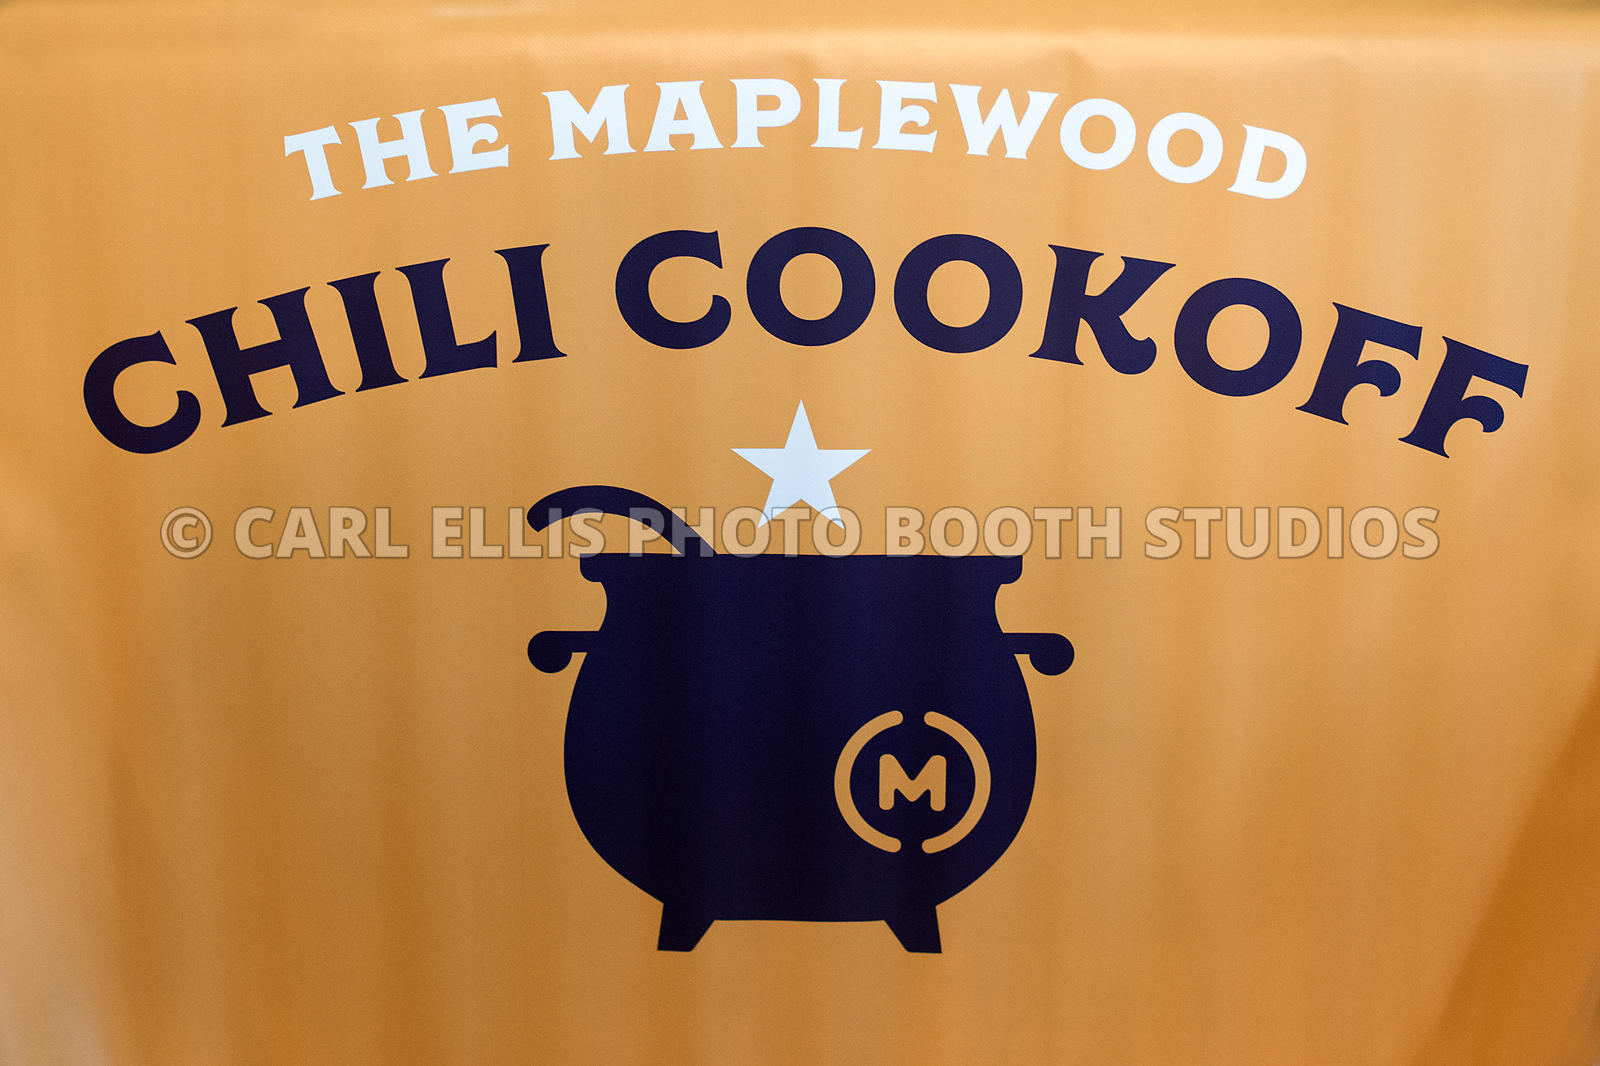 First annual Maplewood Chili Cookoff